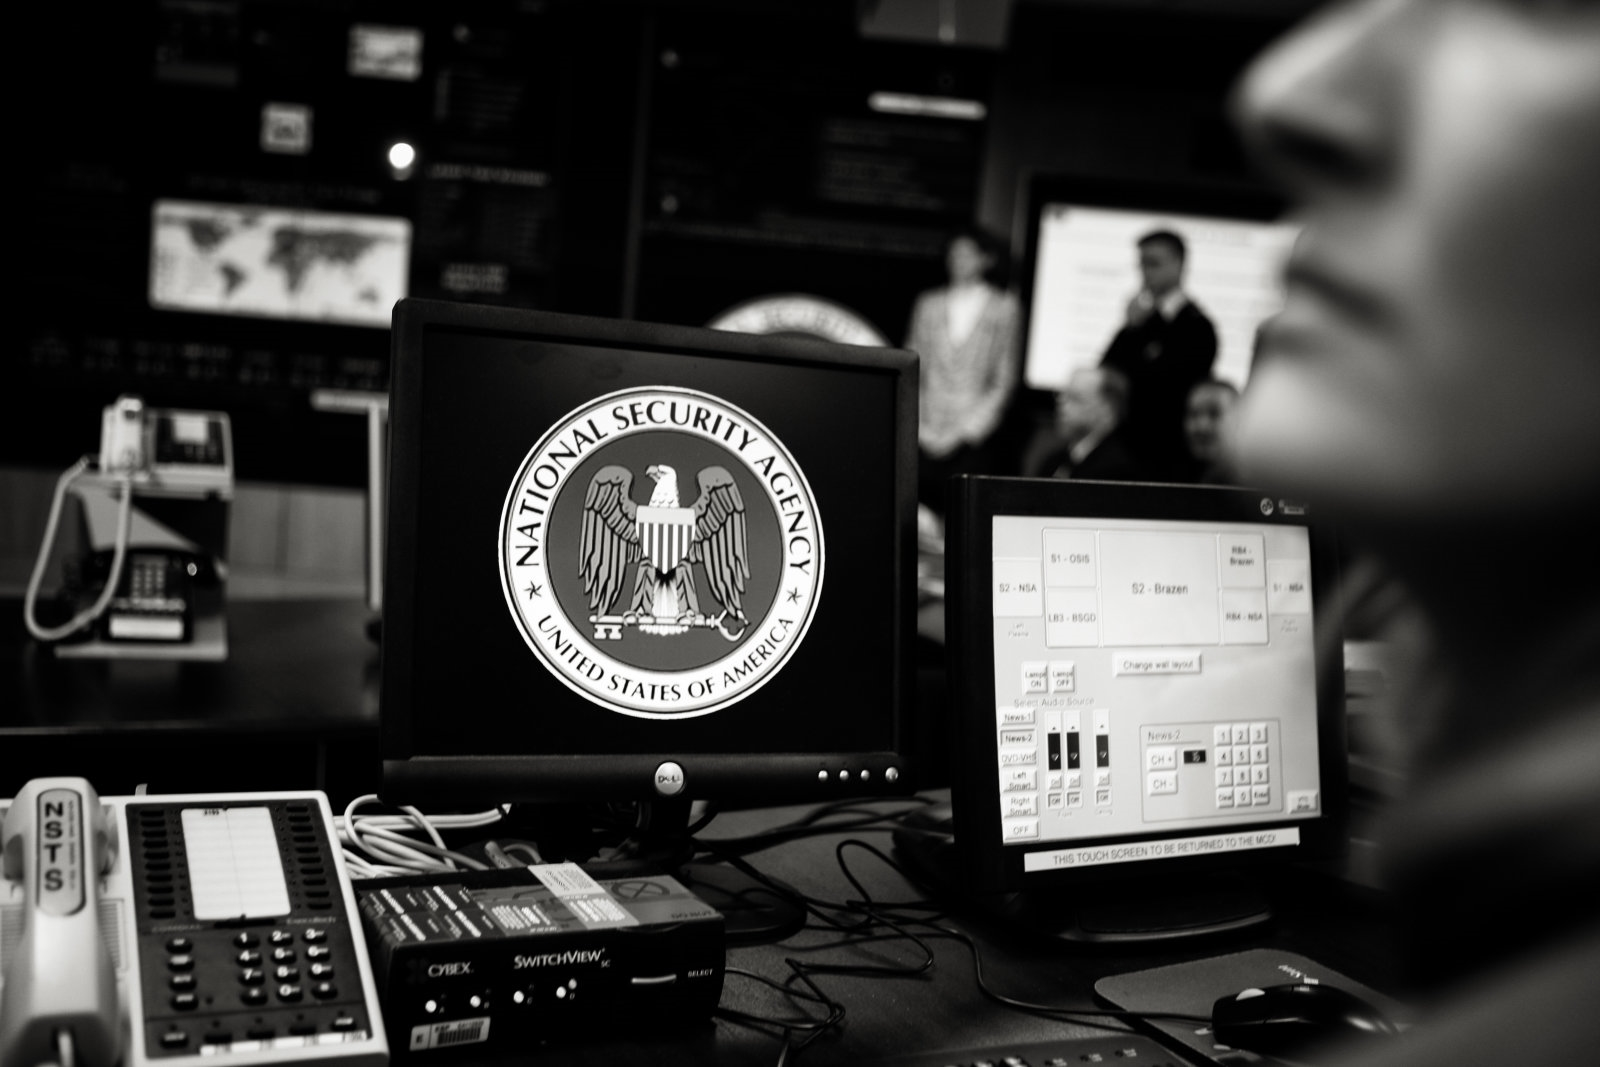 NSA has yet to fix security holes that helped Snowden leaks | DeviceDaily.com